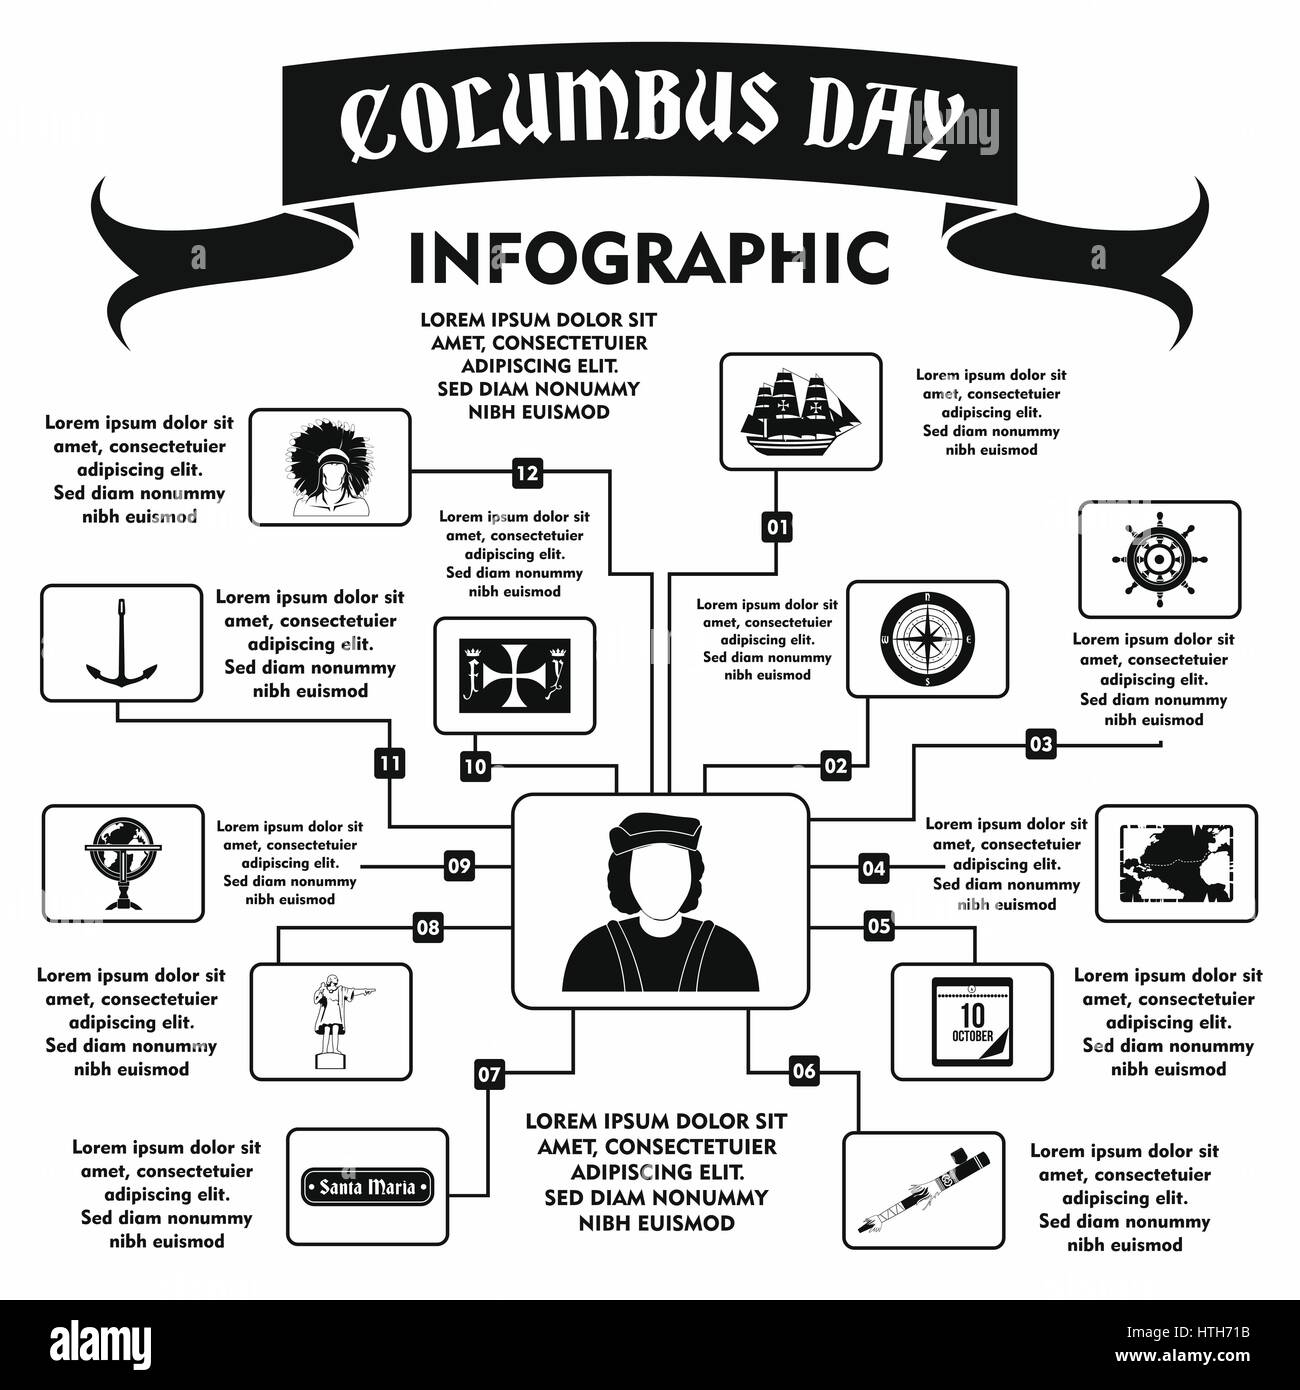 Columbus Day infographic, simple style - Stock Image